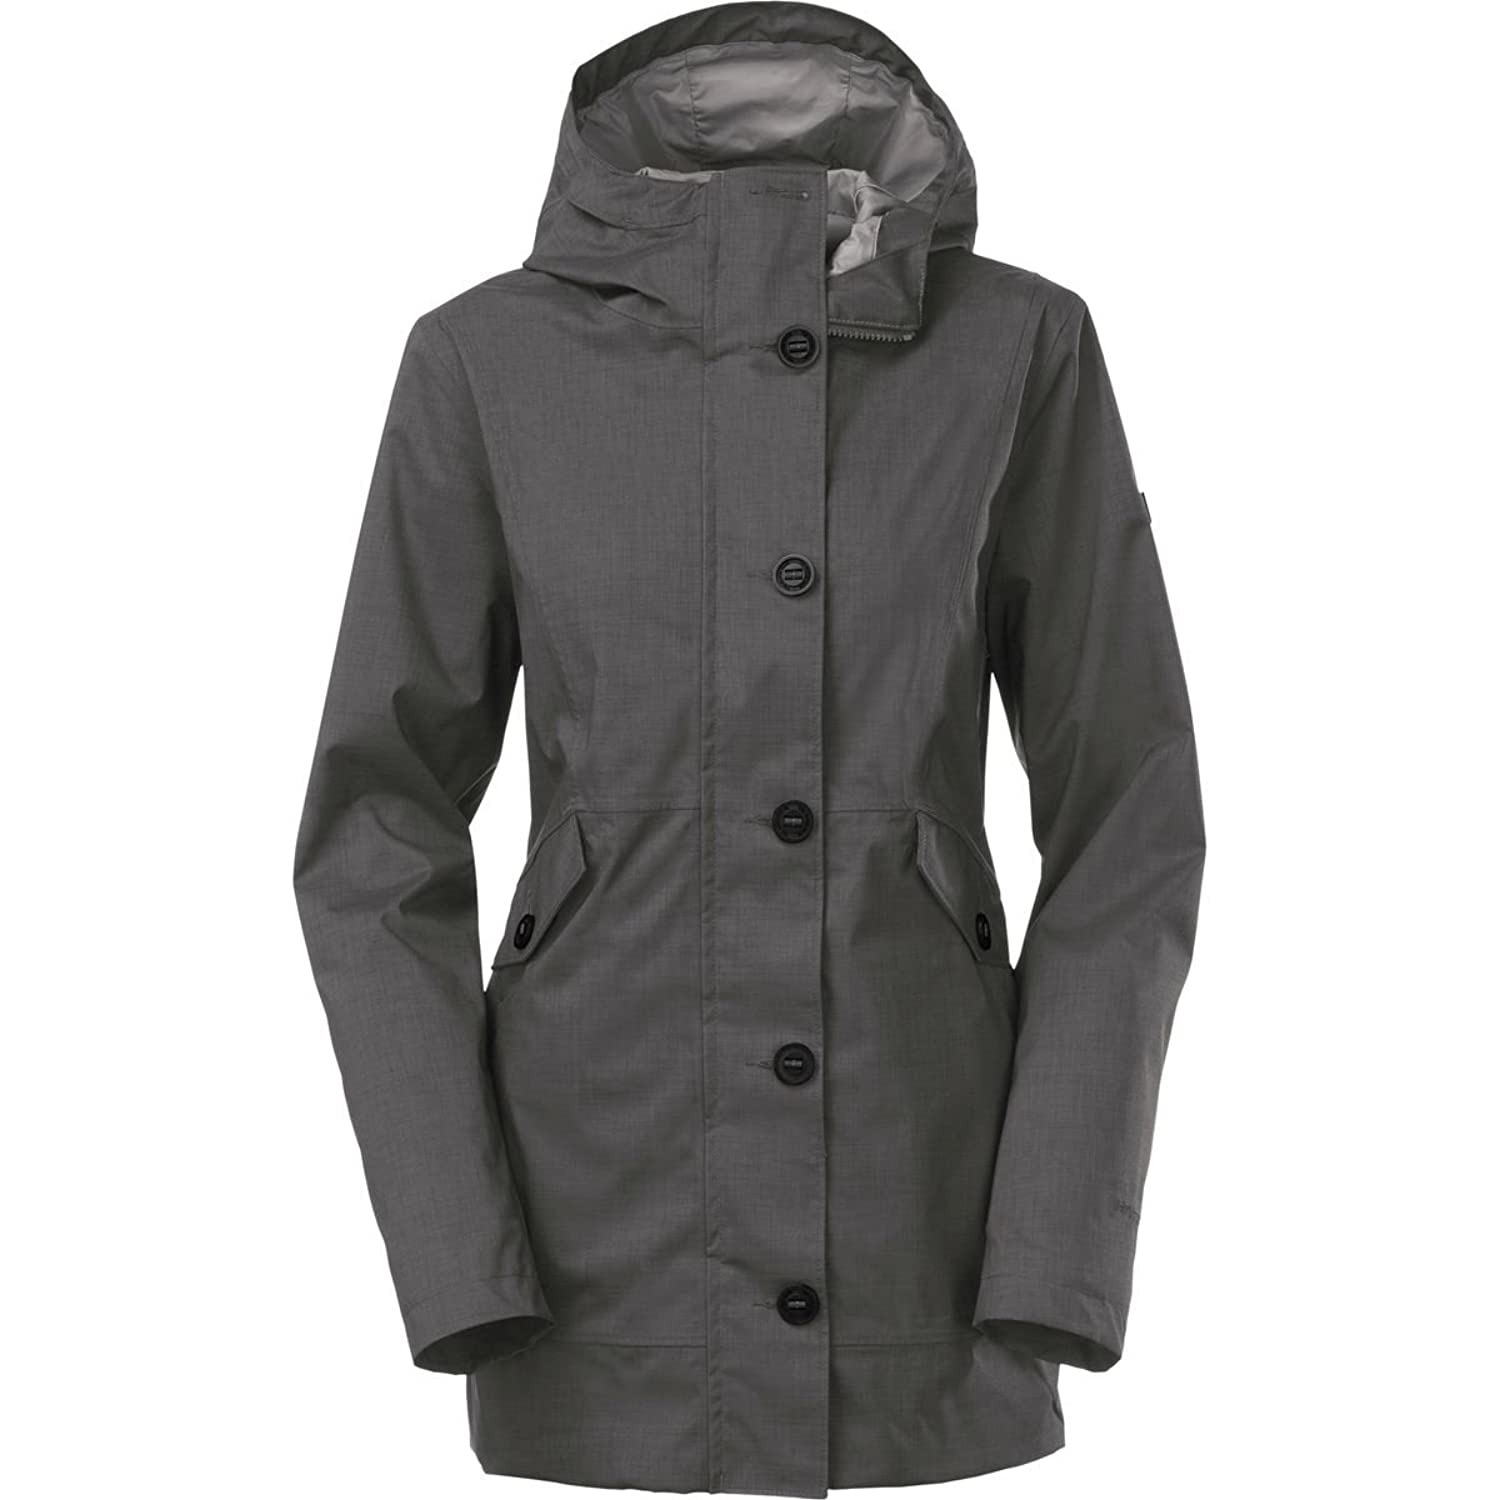 The North Face Damen Jacke Aeliana Triclimate CYK9